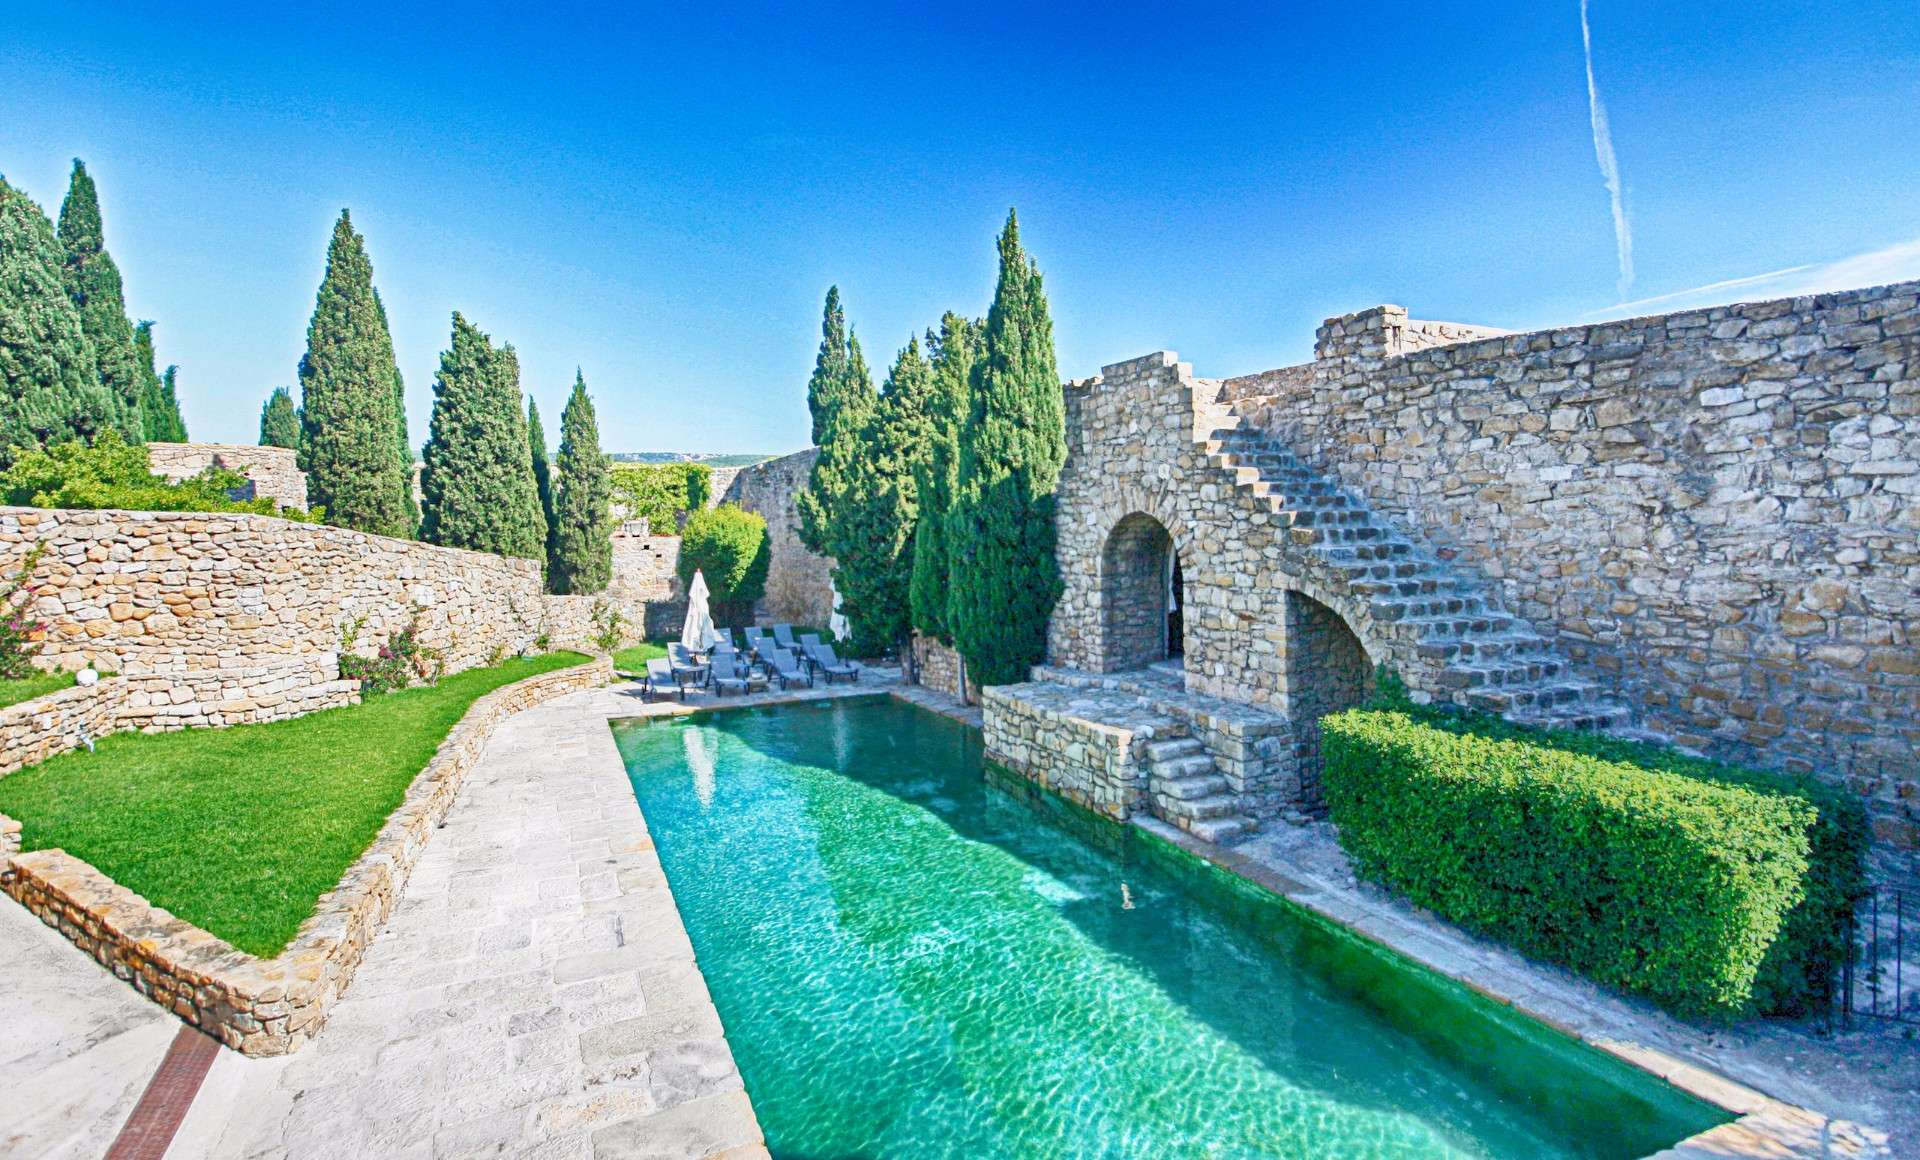 Luxury vacation rentals europe - France - Provence ih - Cassis - Chateau de Cassis - Image 1/32